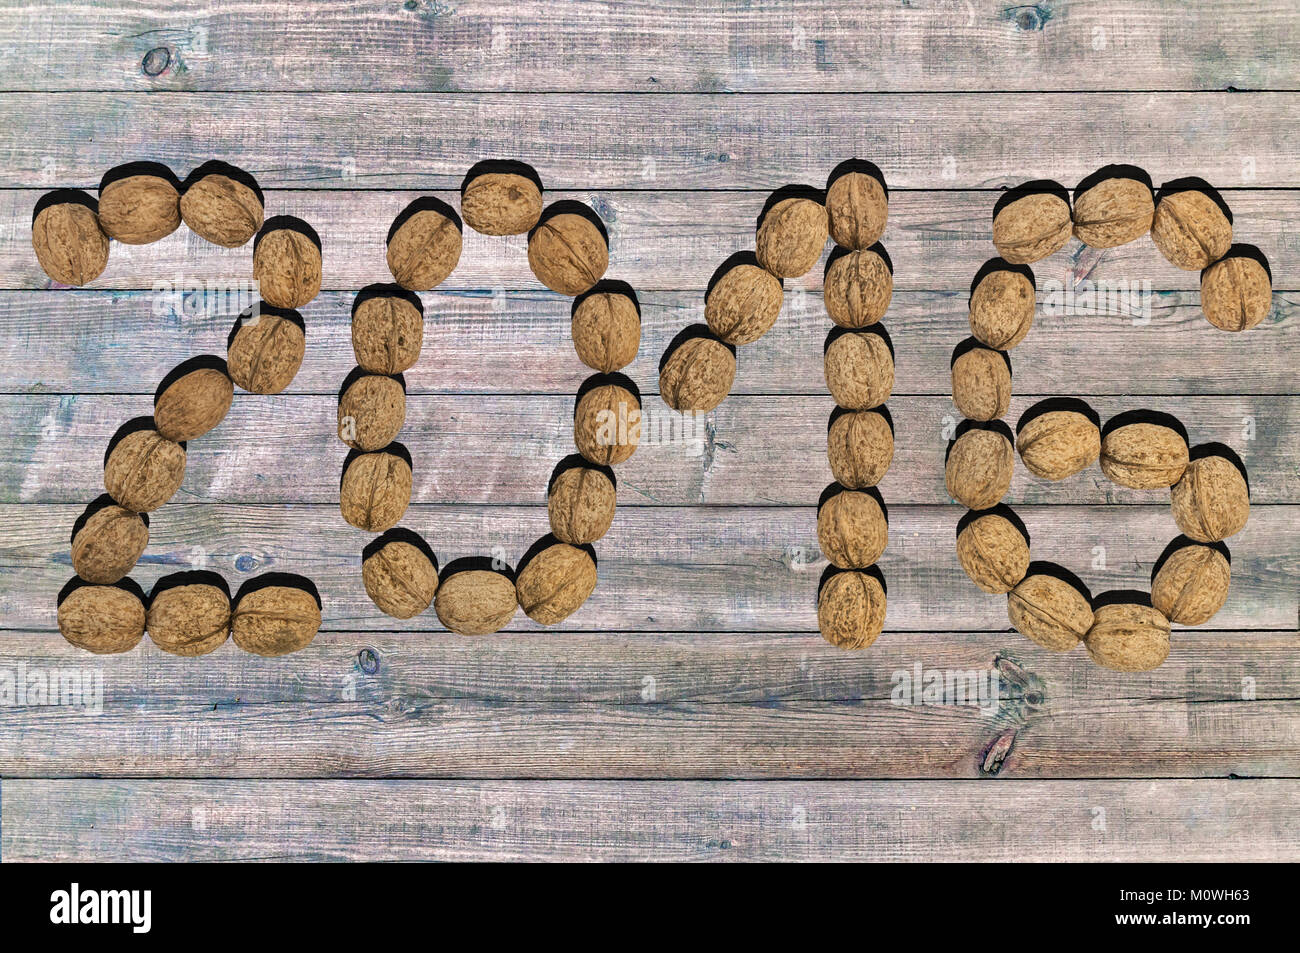 New year 2016 number made od dry walnut on wooden background Stock Photo